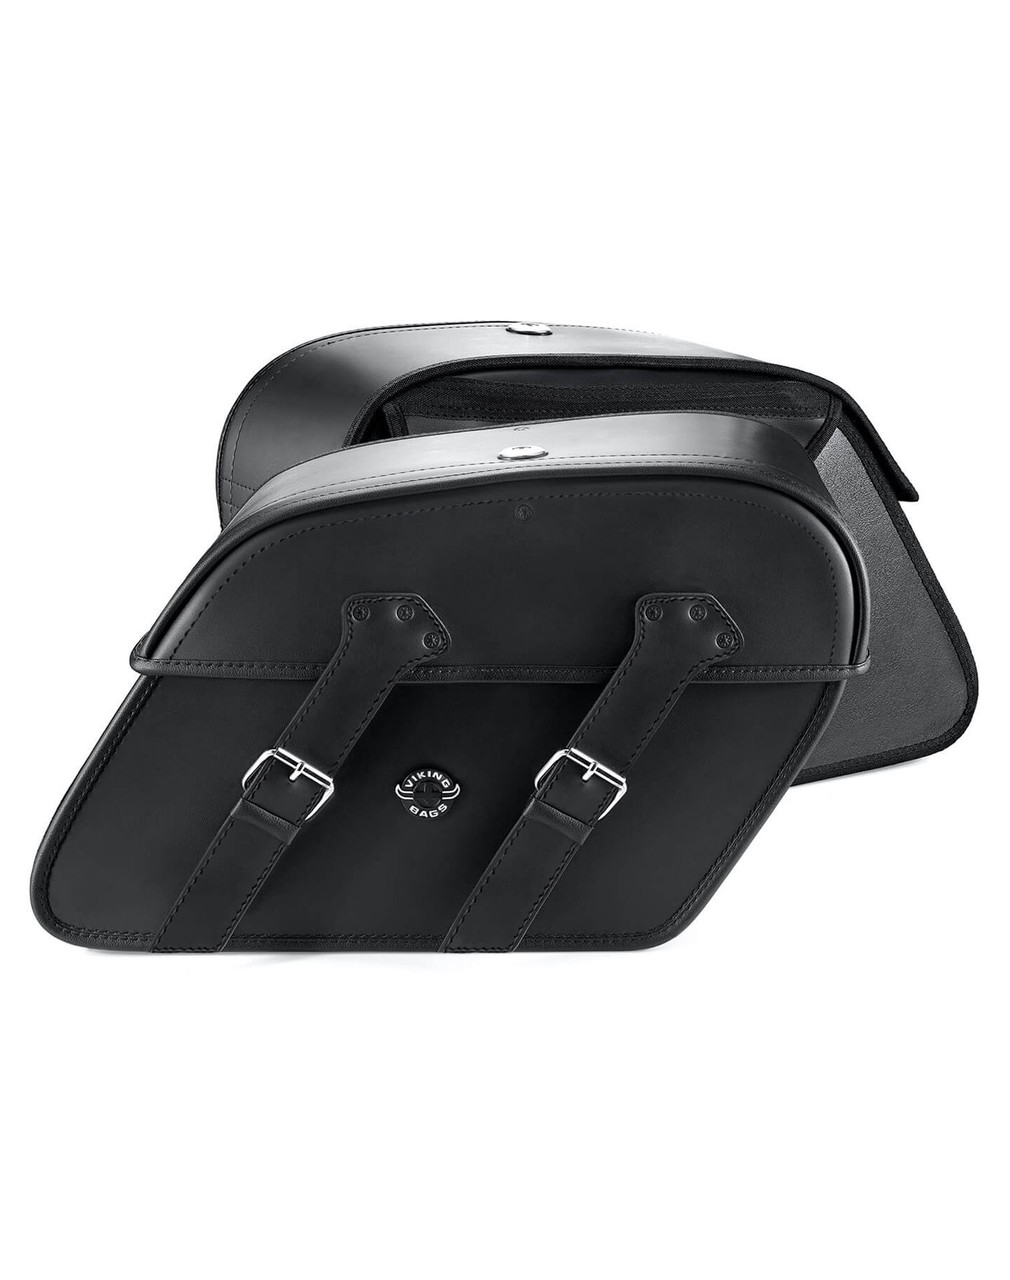 Viking Raven Medium Leather Motorcycle Saddlebags For Harley Softail Springer FXSTS both bags view